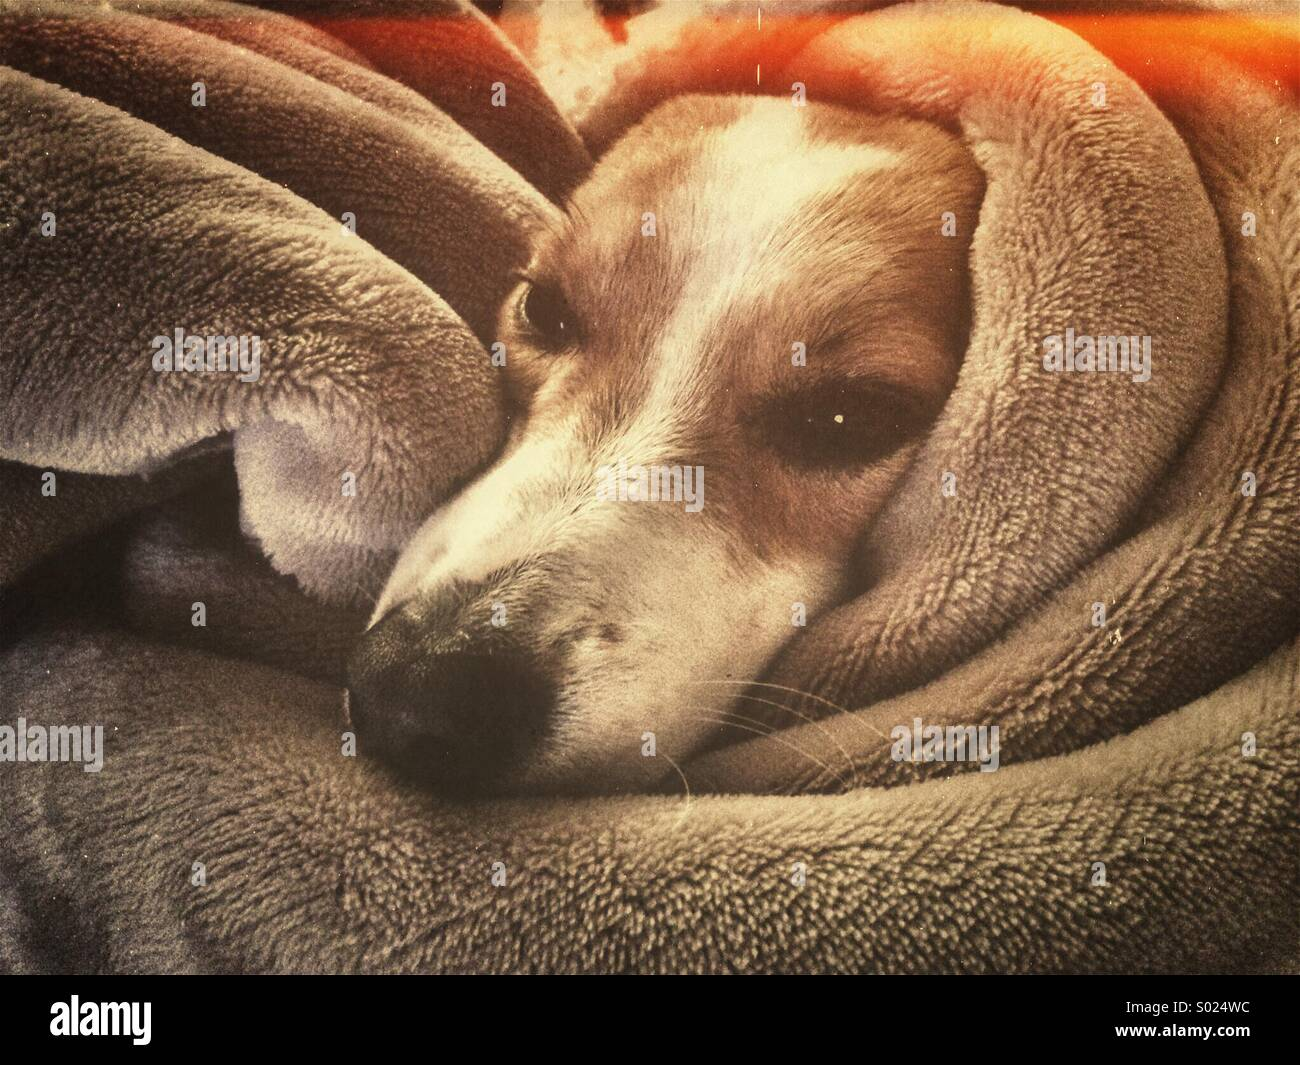 Dog wrapped in blanket - Stock Image